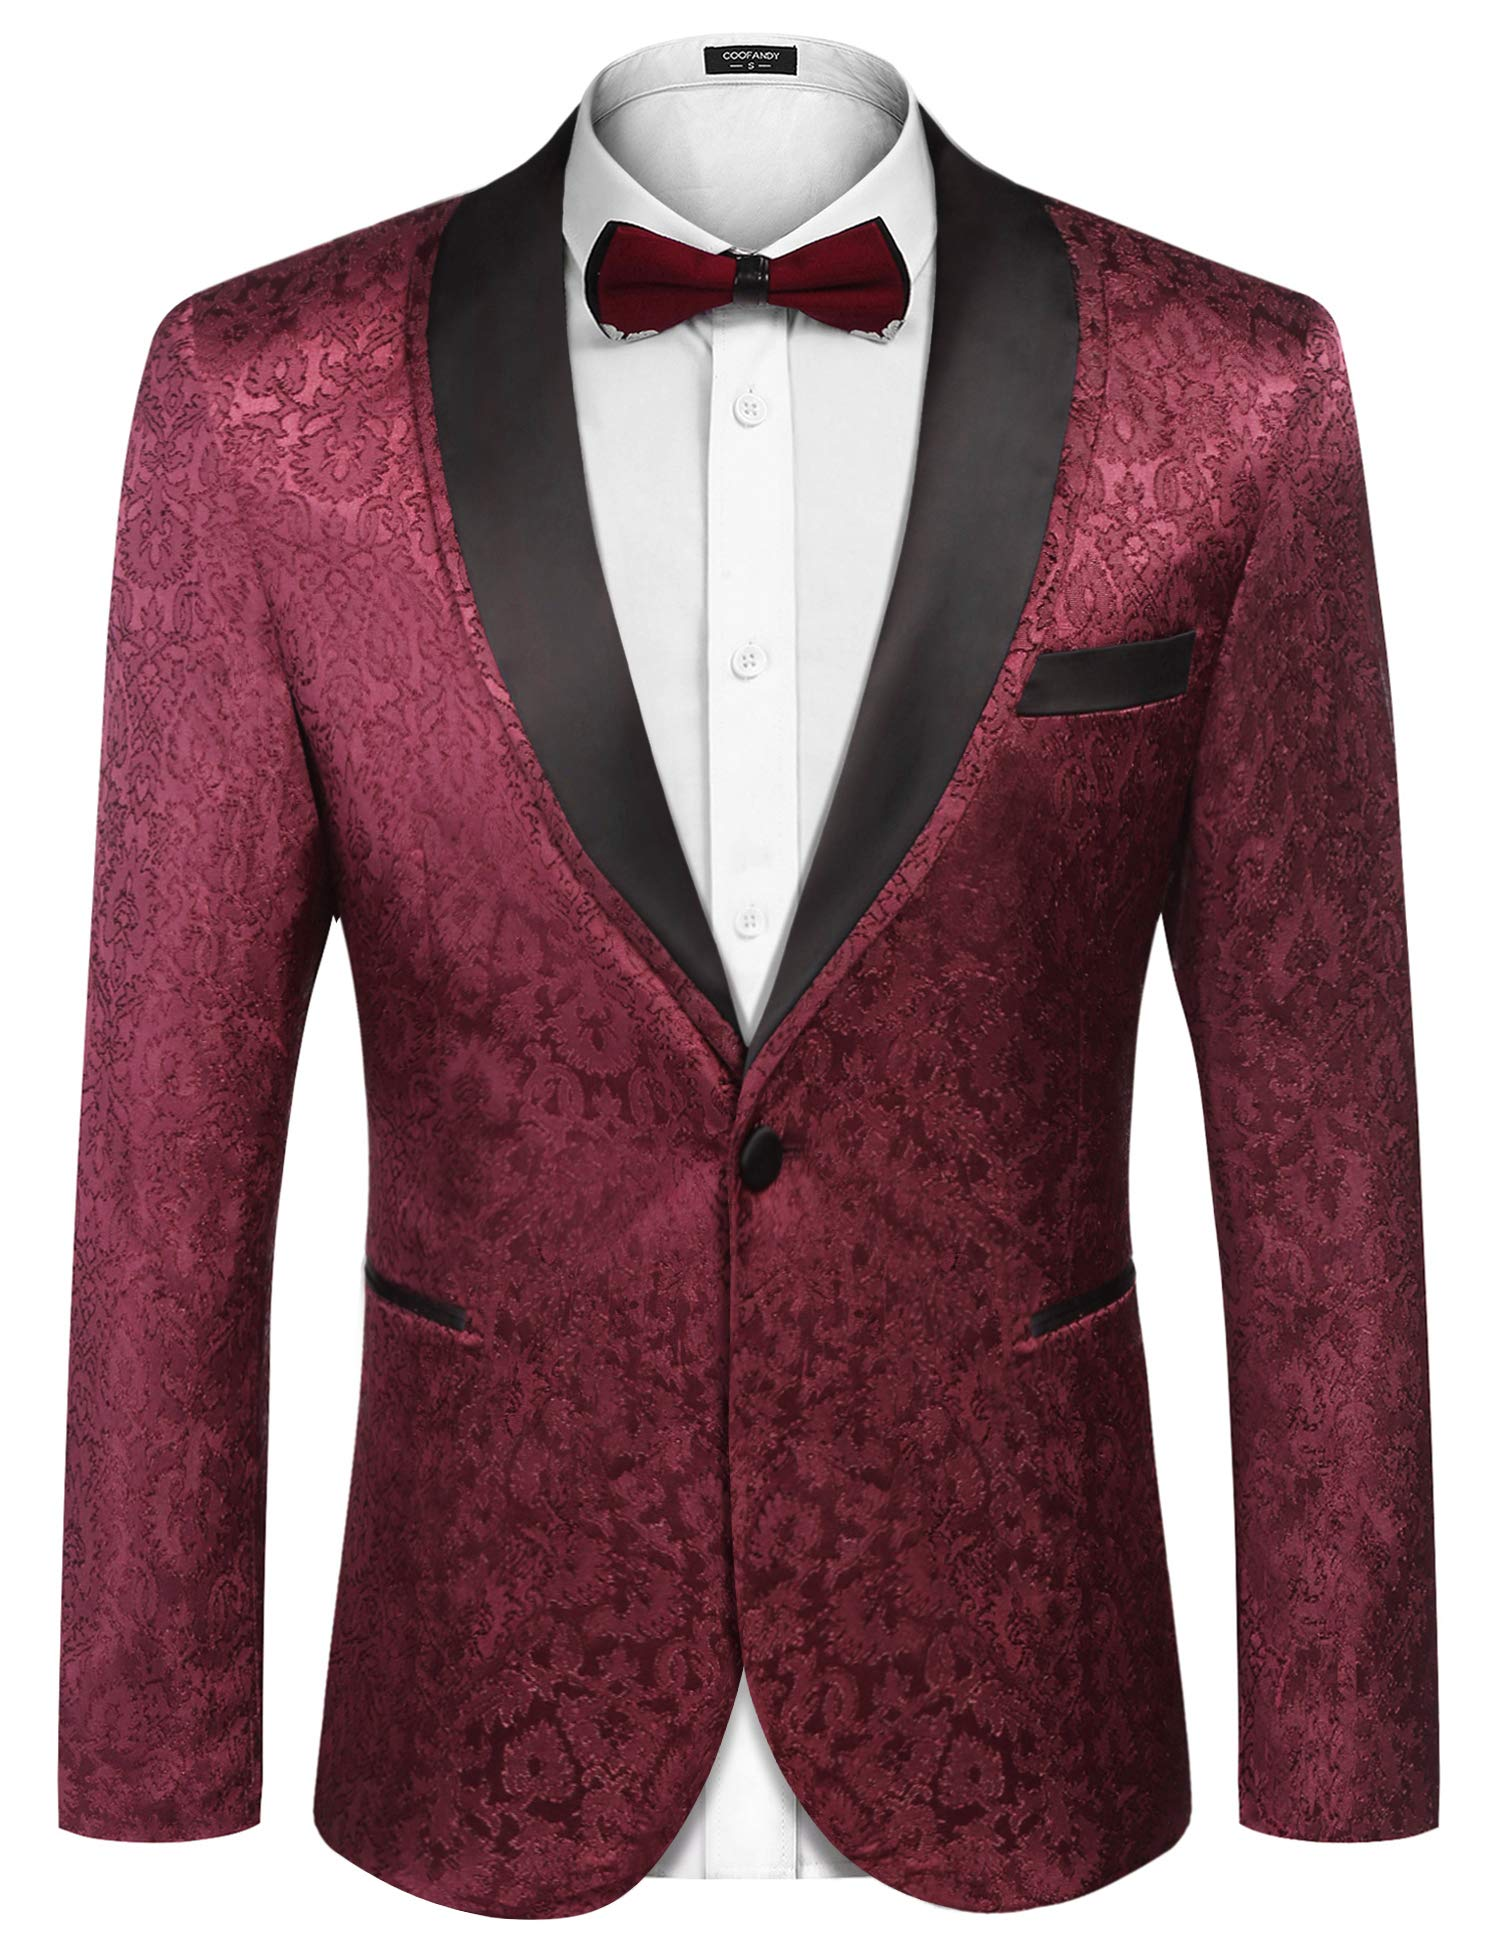 COOFANDY Men's Floral Tuxedo Suit Jacket Slim Fit Dinner Jacket Party Prom Wedding Blazer Jackets Wine Red by COOFANDY